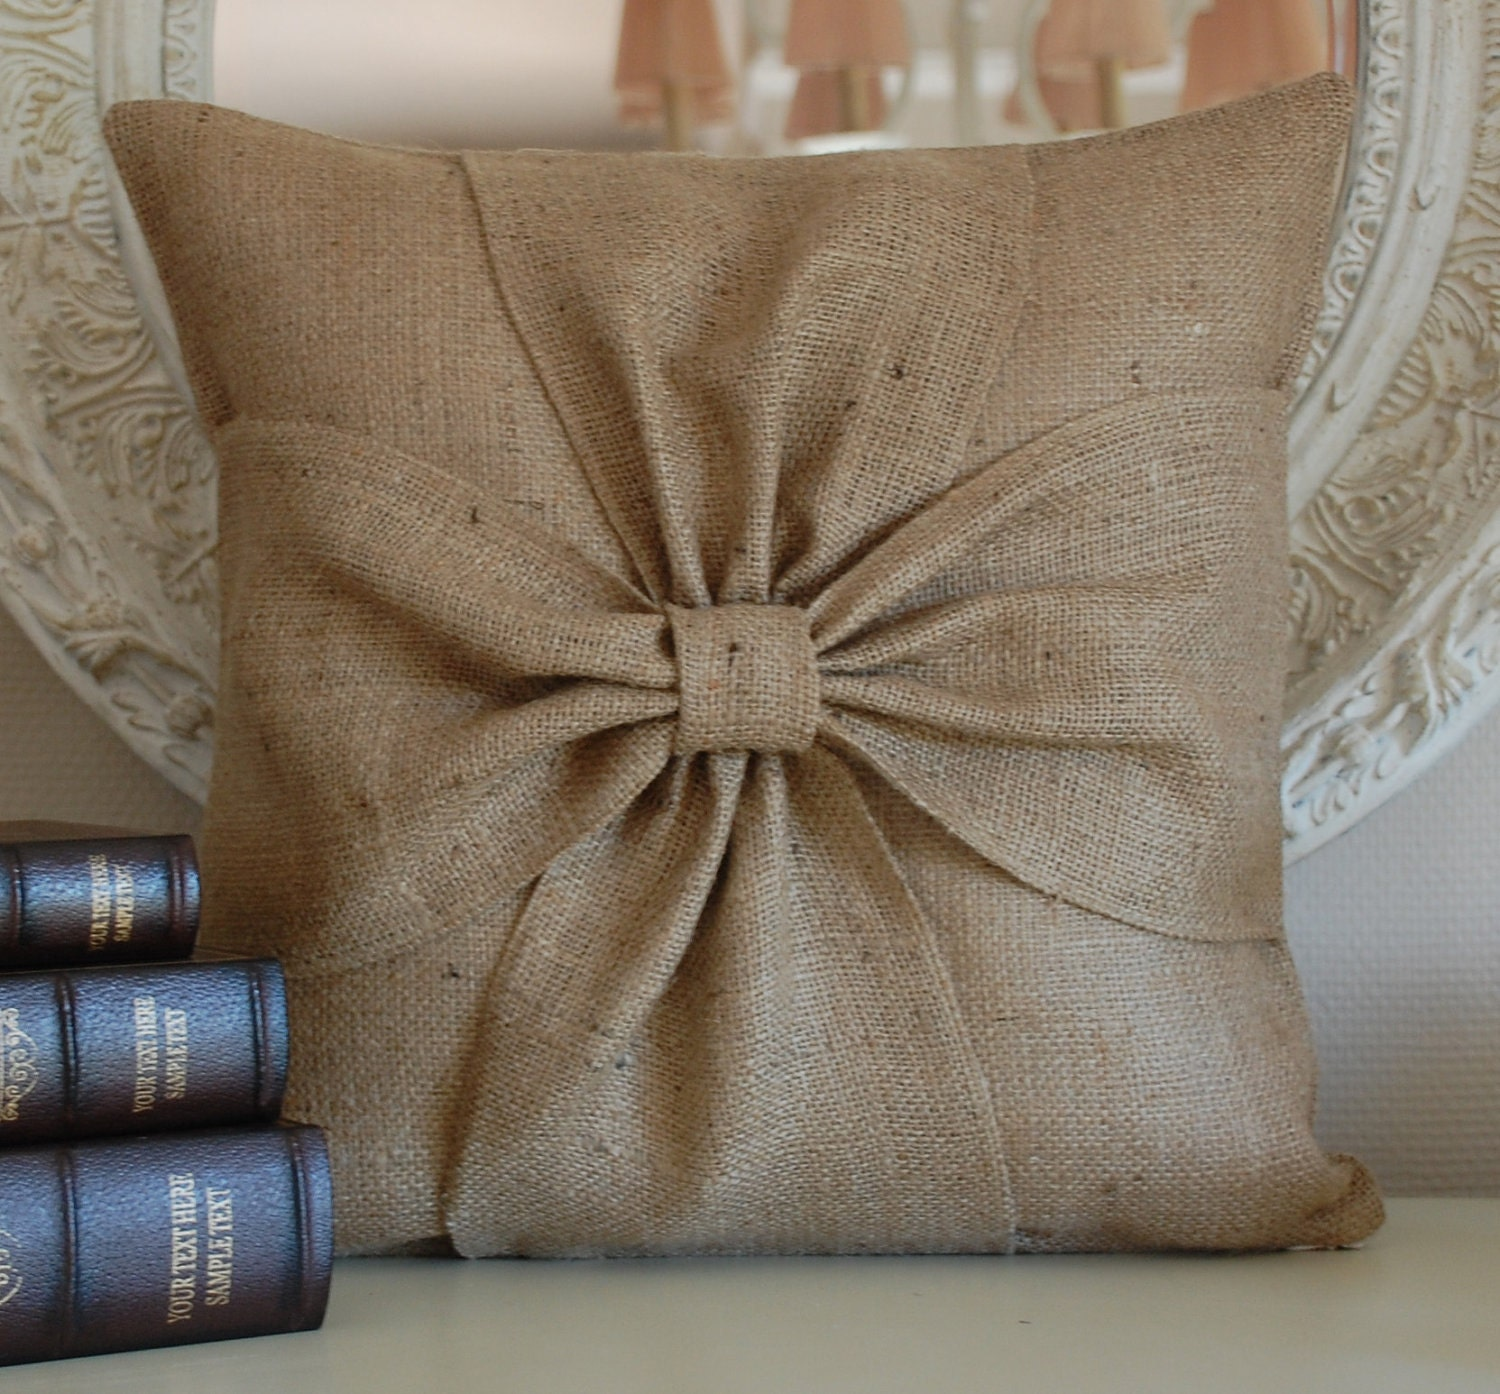 Burlap Throw Pillows Etsy : Burlap bow pillow cover by secdus on Etsy